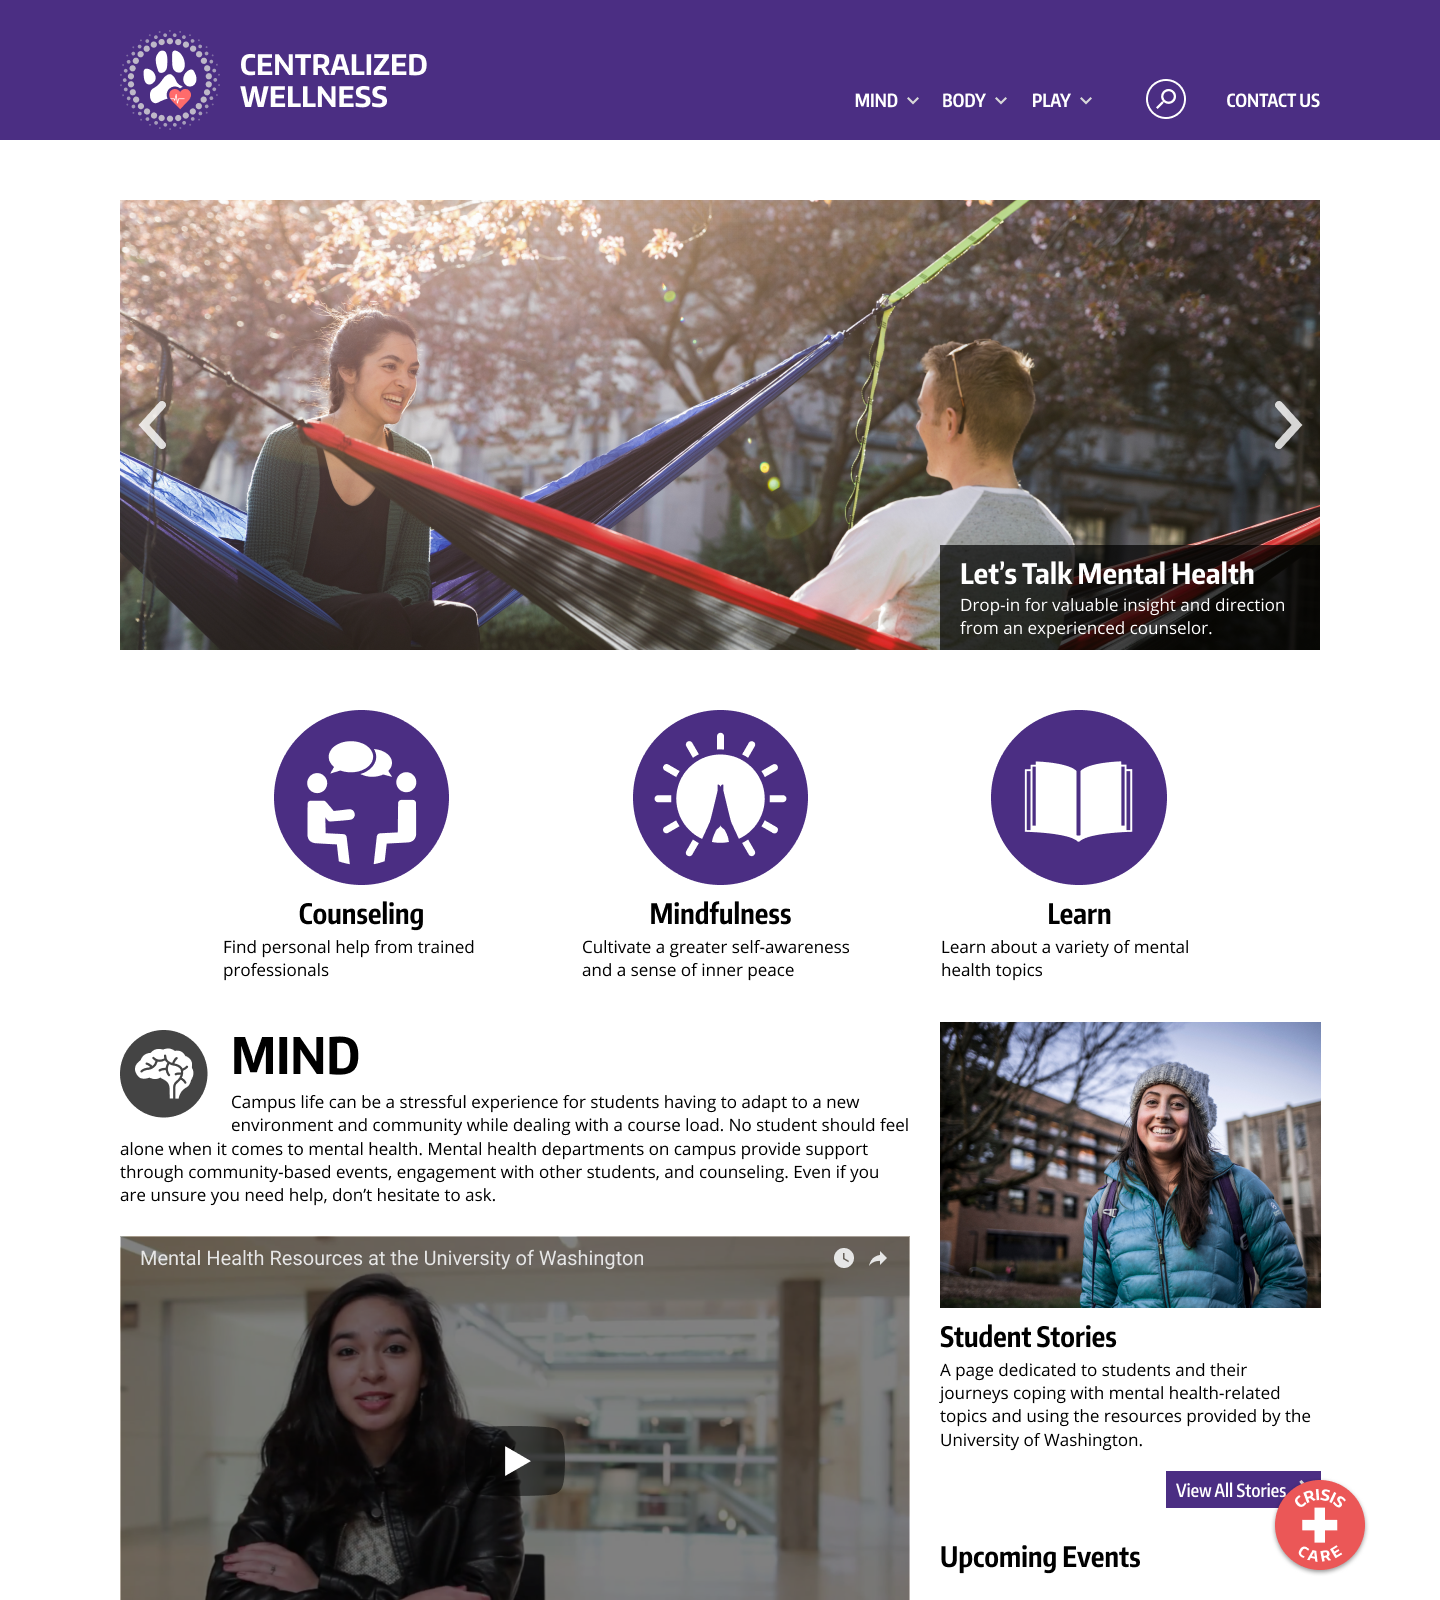 Mind:  The page that hosts the counseling, mindfulness, and mental health education